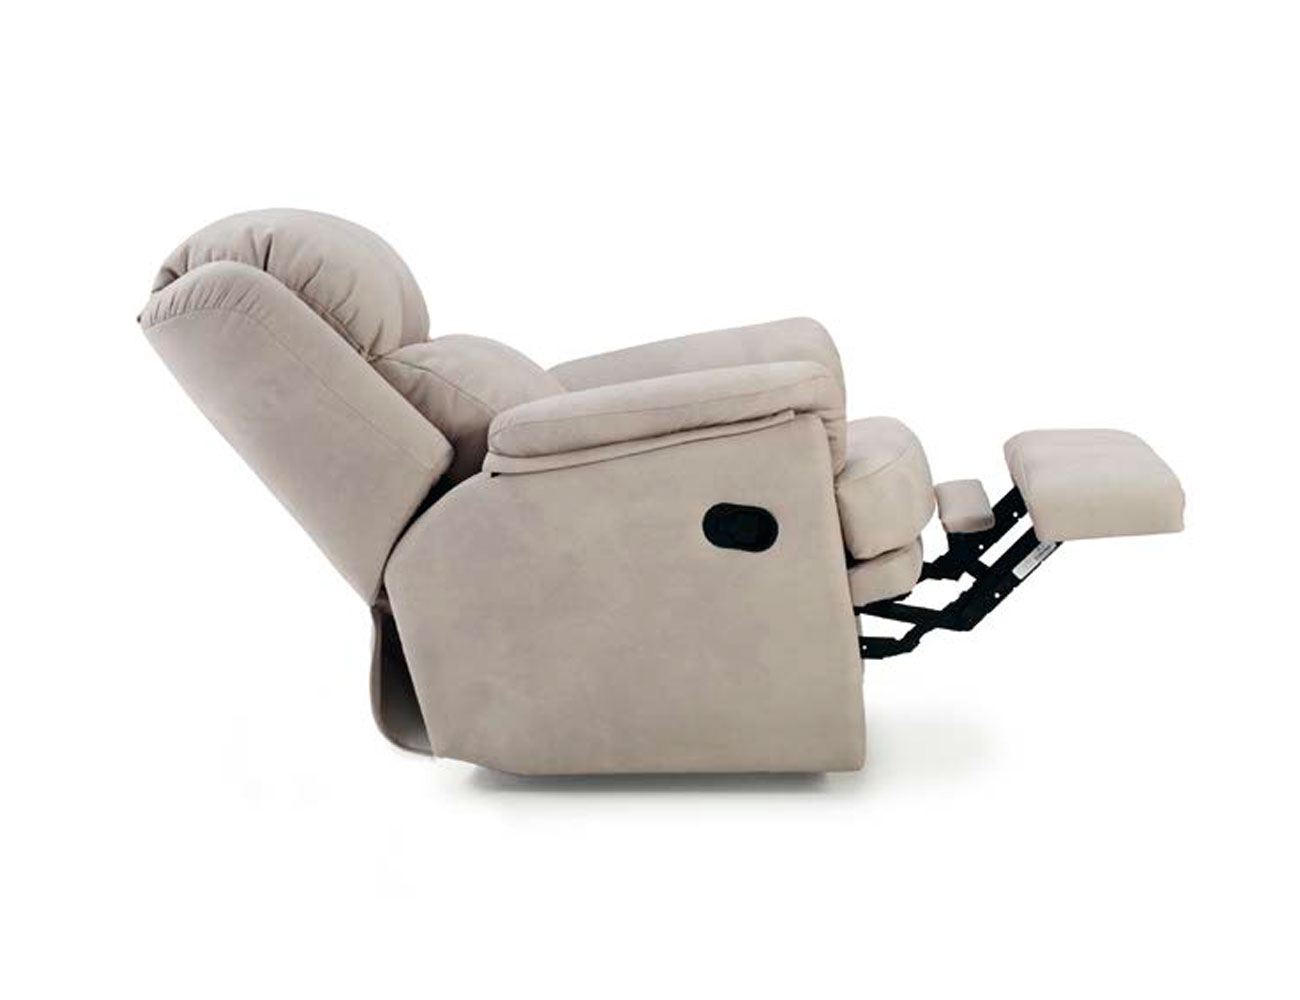 Sillon relax manual palanca esther 17